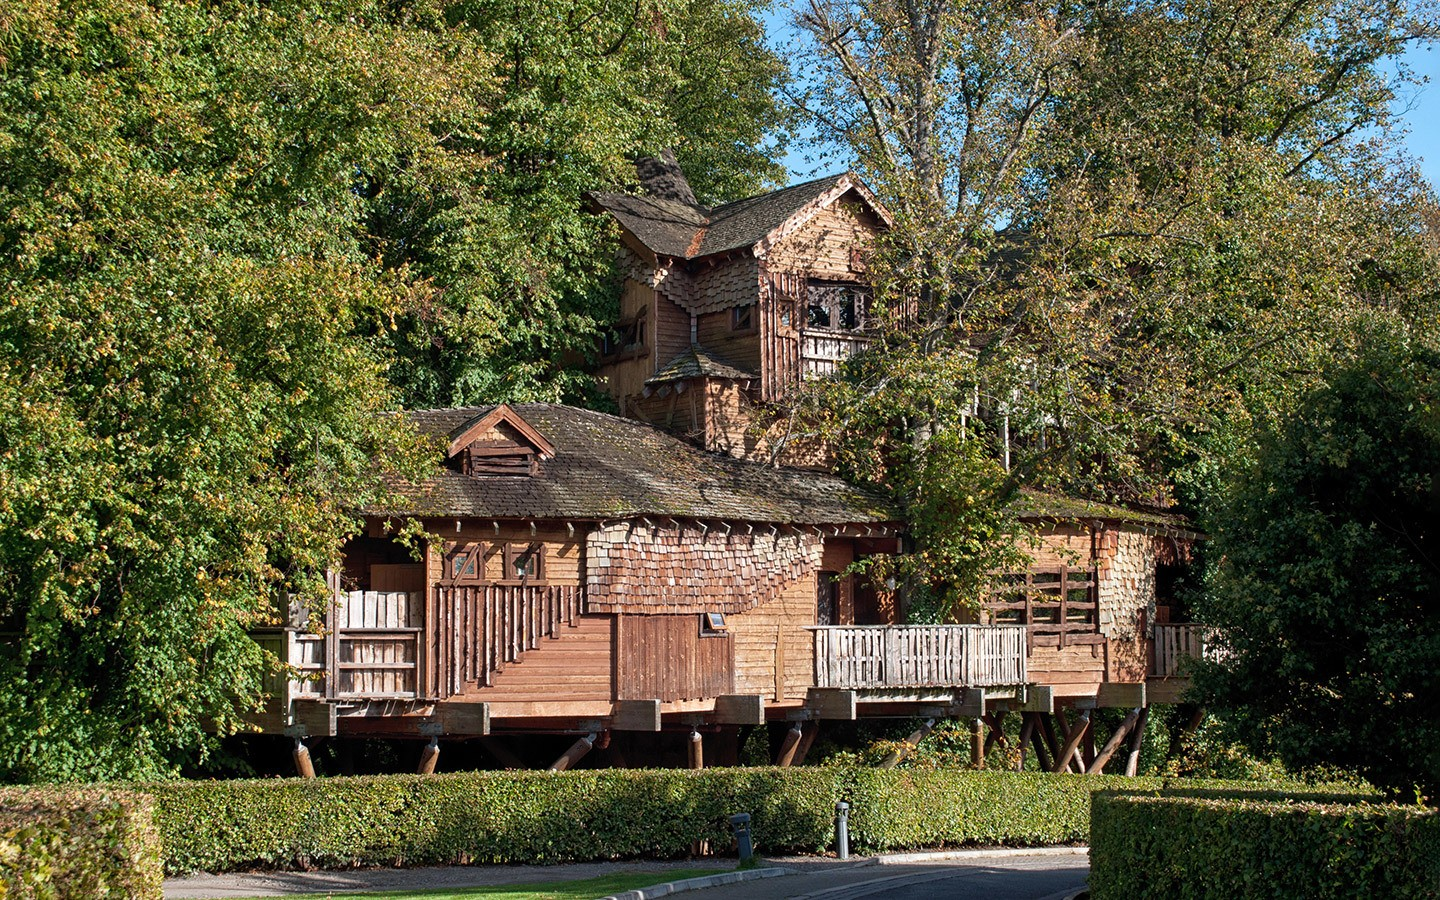 The treehouse restaurant at Alnwick Castle and Garden